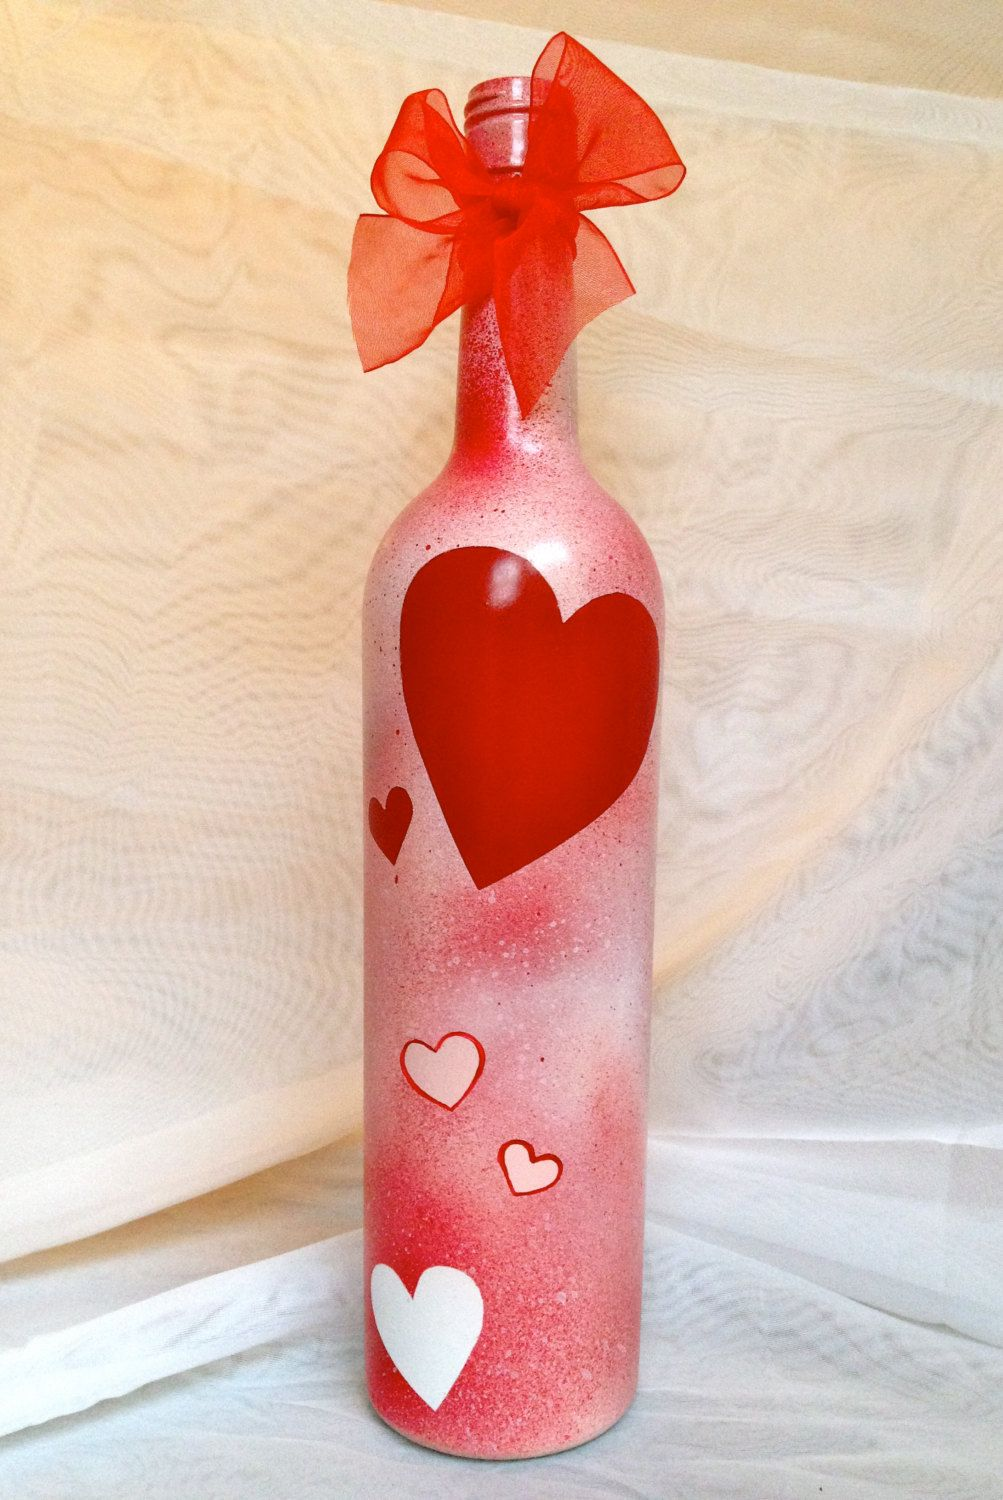 Surprise your valentine with a beautiful bottle this Valentine's Day! This fun and vibrant wine bottle has been painted with a tie-dye/graffiti